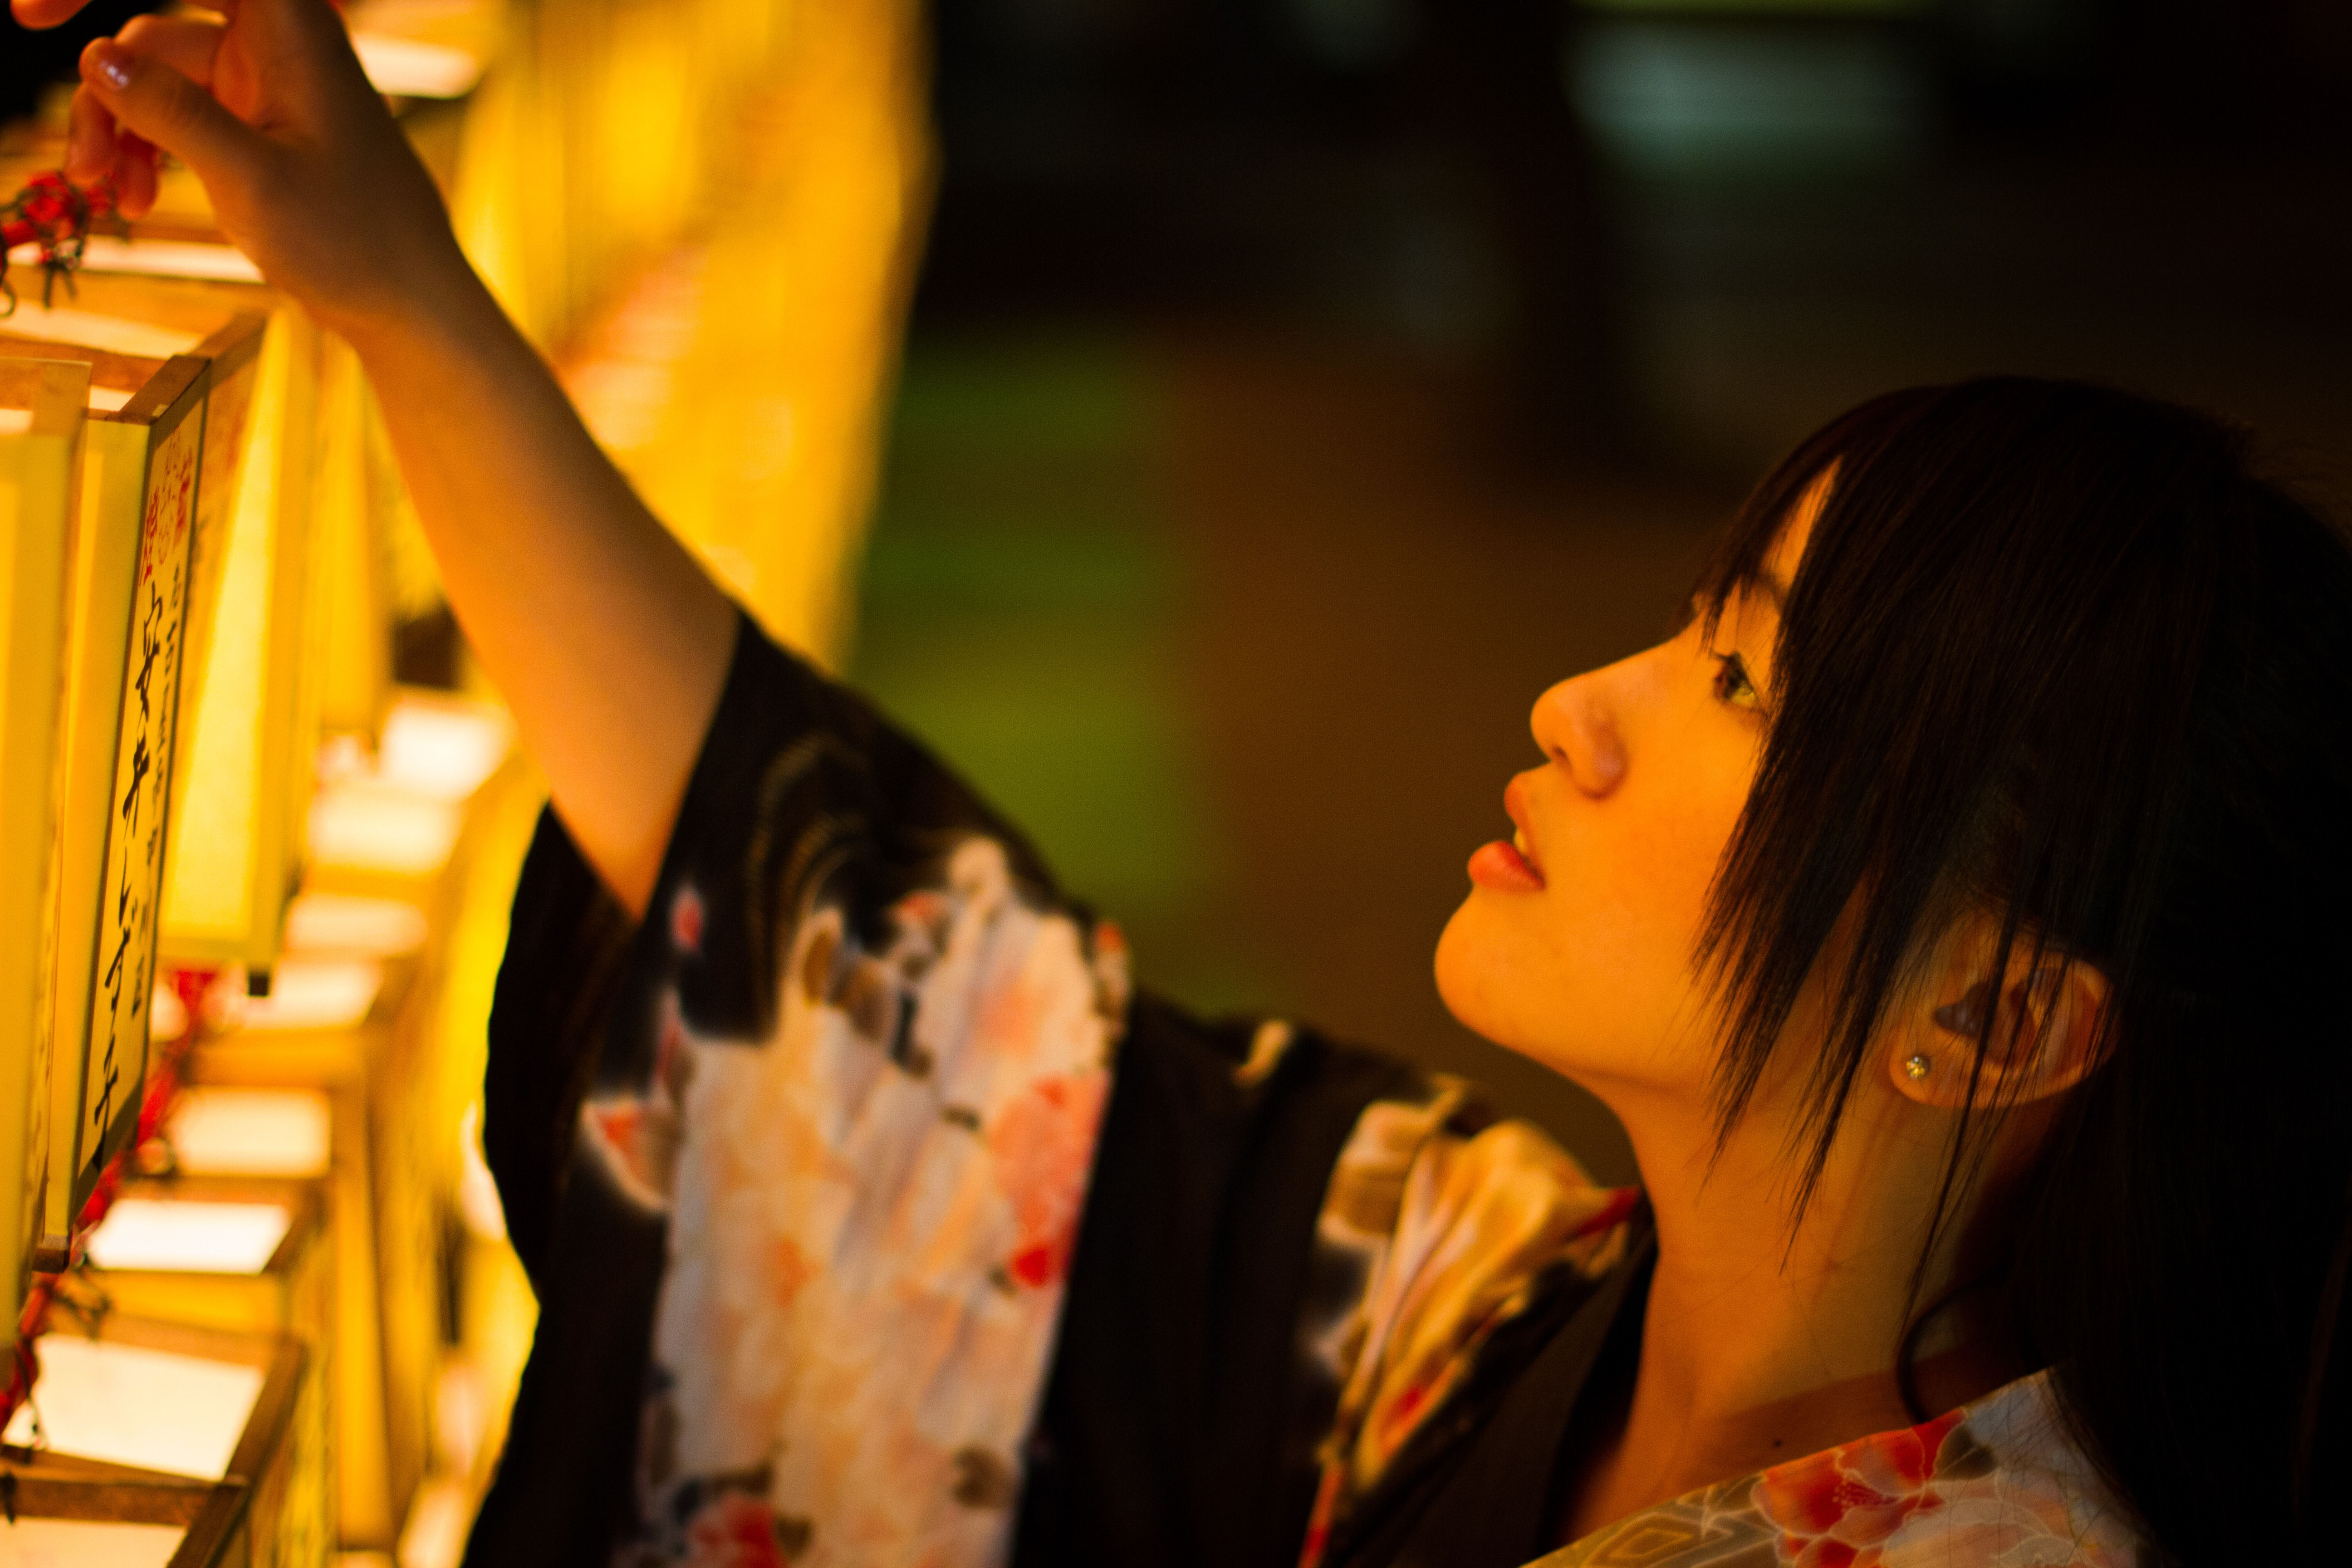 Girl making an offering during Obon in Japan